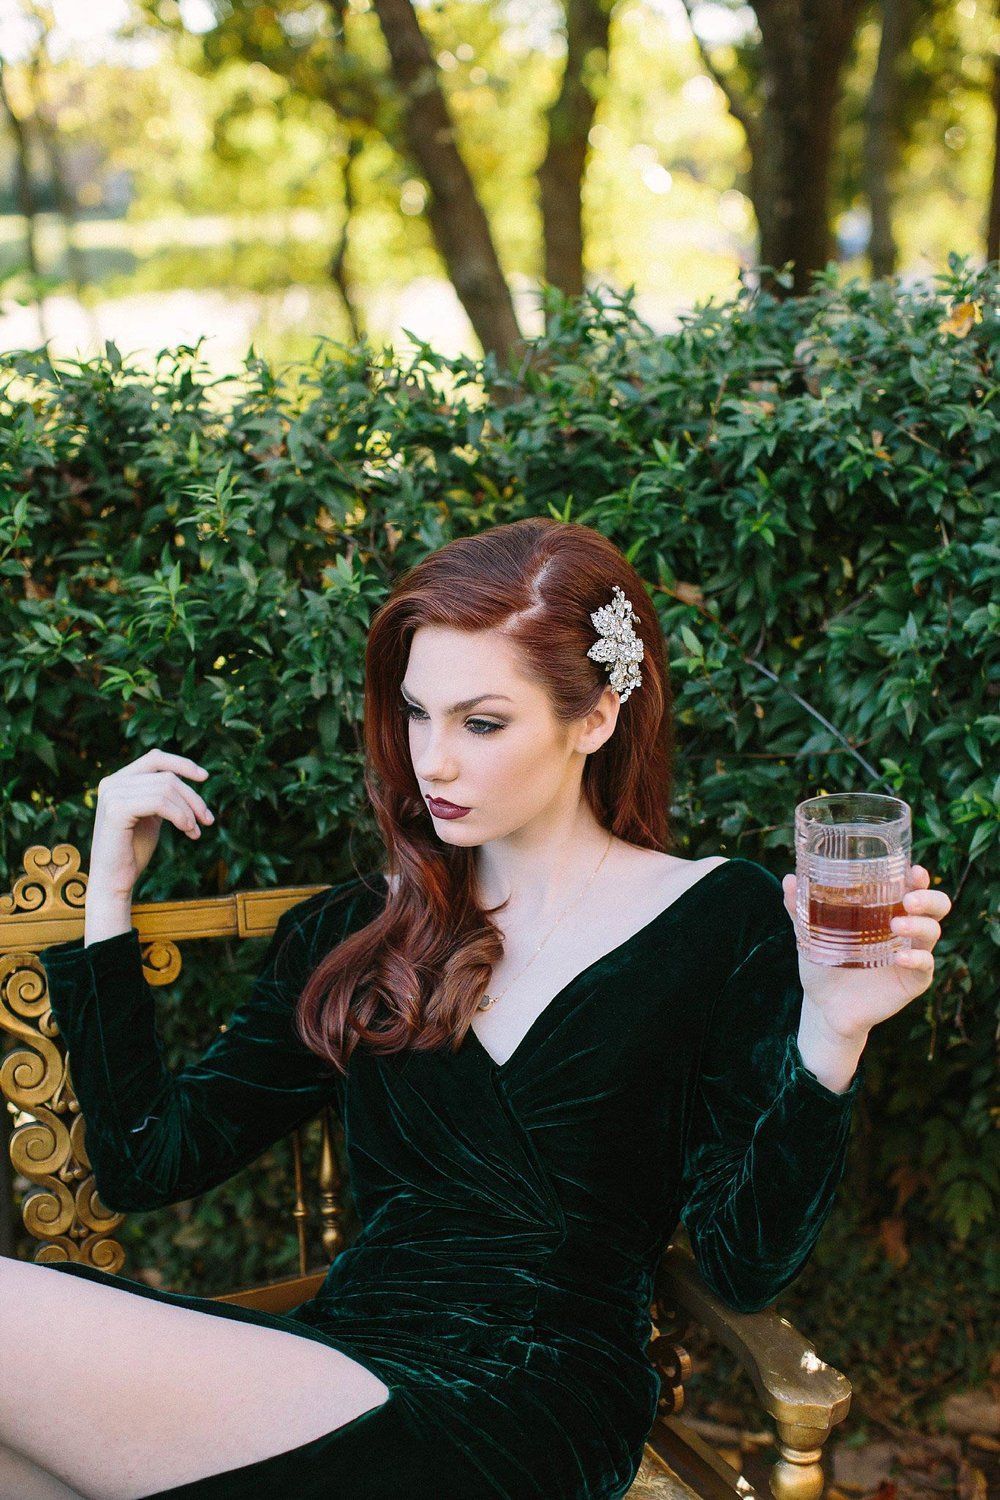 Redhead in velvet green dress drinking whiskey